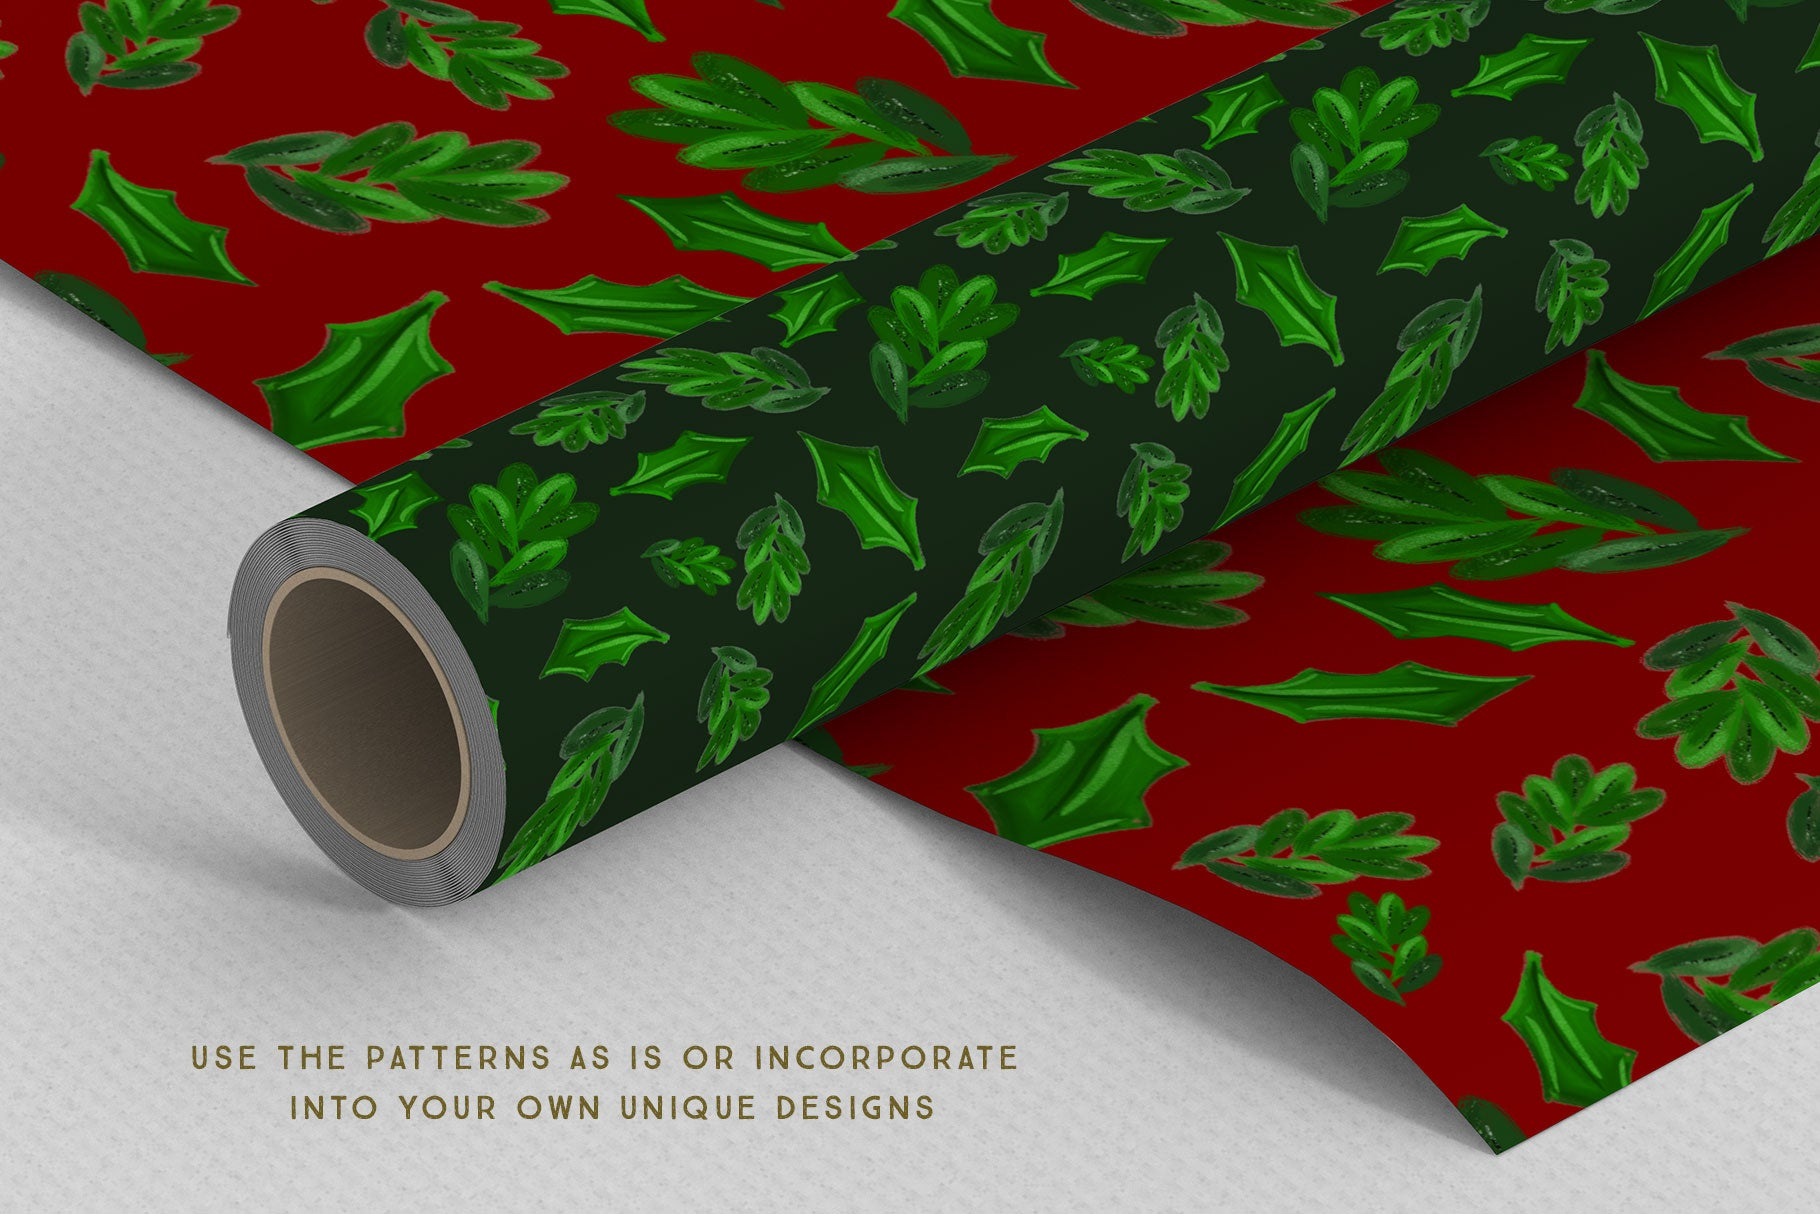 Luxe Christmas & Holiday Greenery Alphabets: make holiday wrapping paper